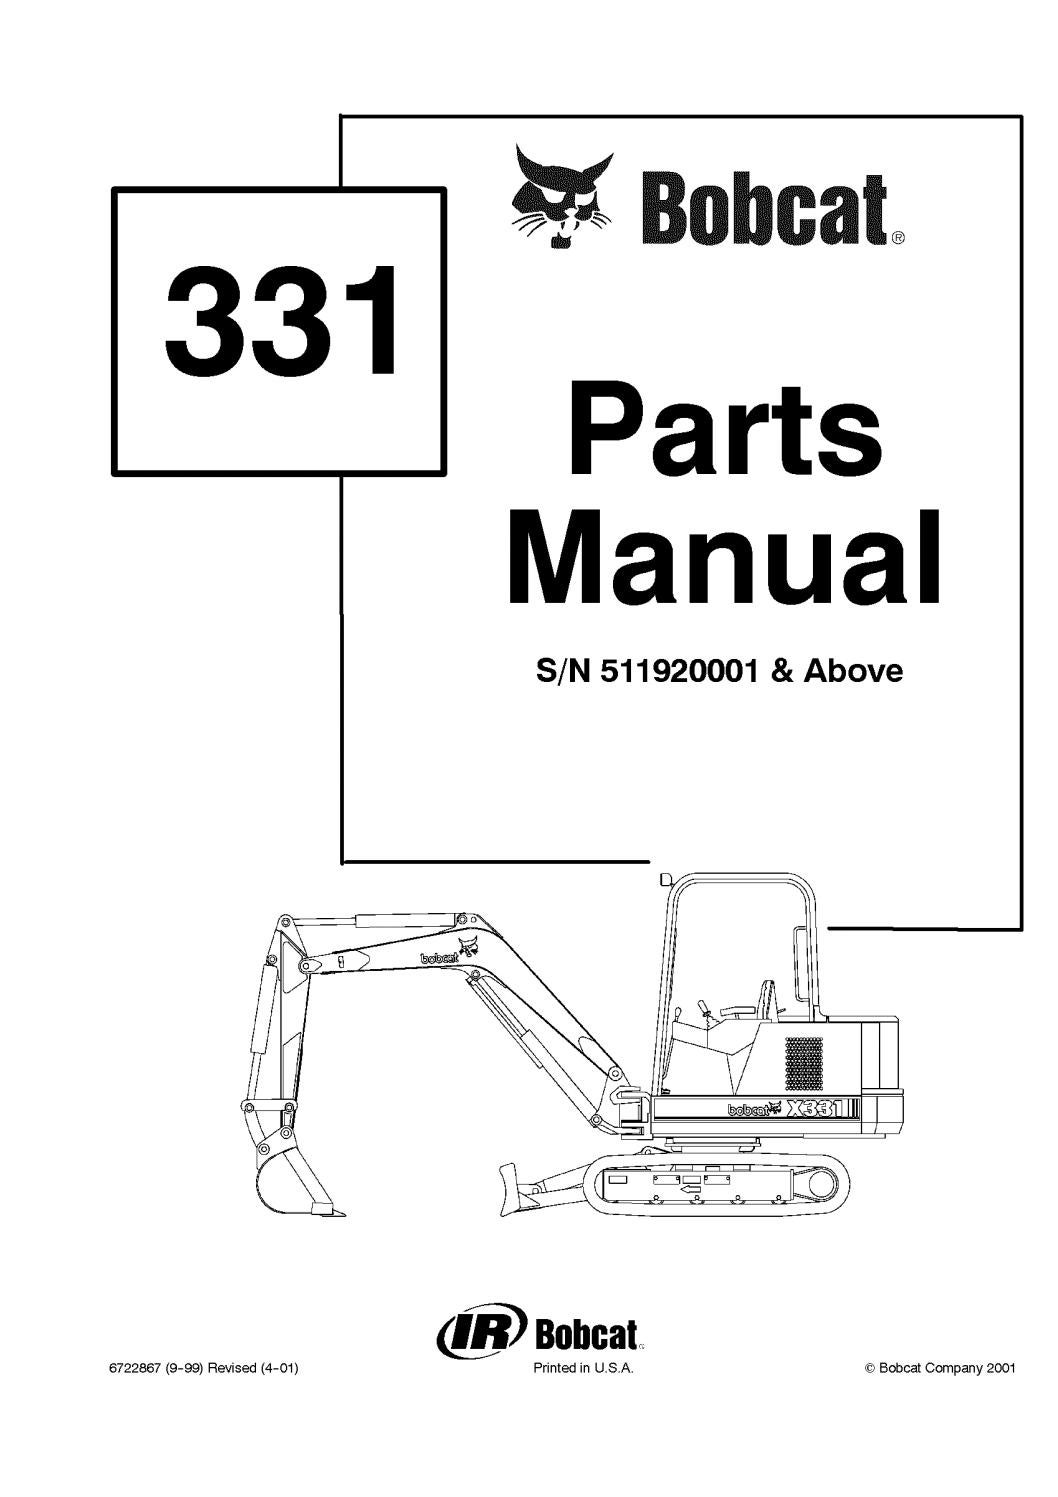 hight resolution of bobcat 331 parts diagram wiring diagram structurebobcat 331 parts diagram wiring diagram bobcat 331 excavator parts